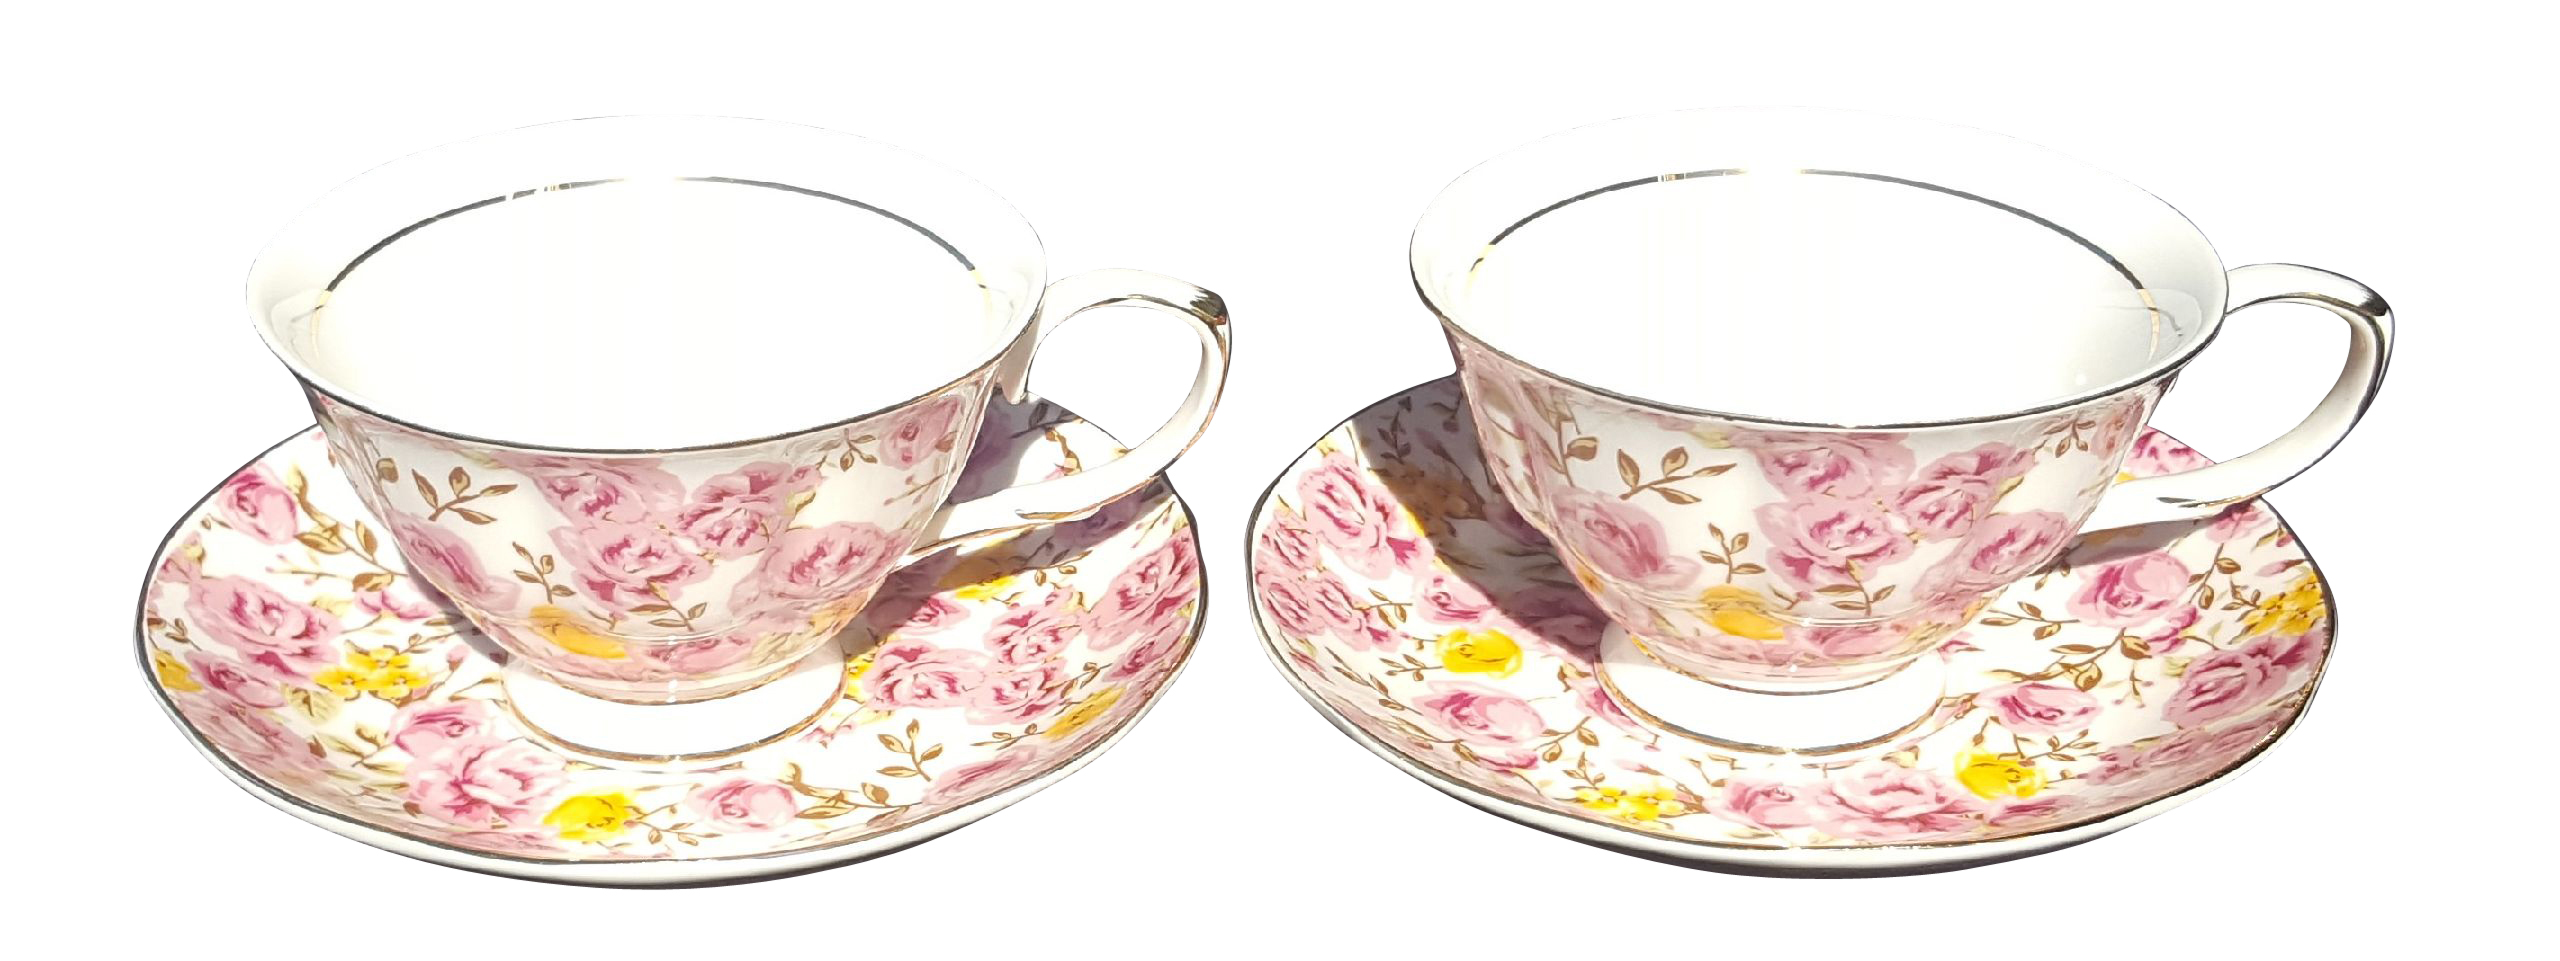 Candy Rose Bloom 2 cup & saucer set